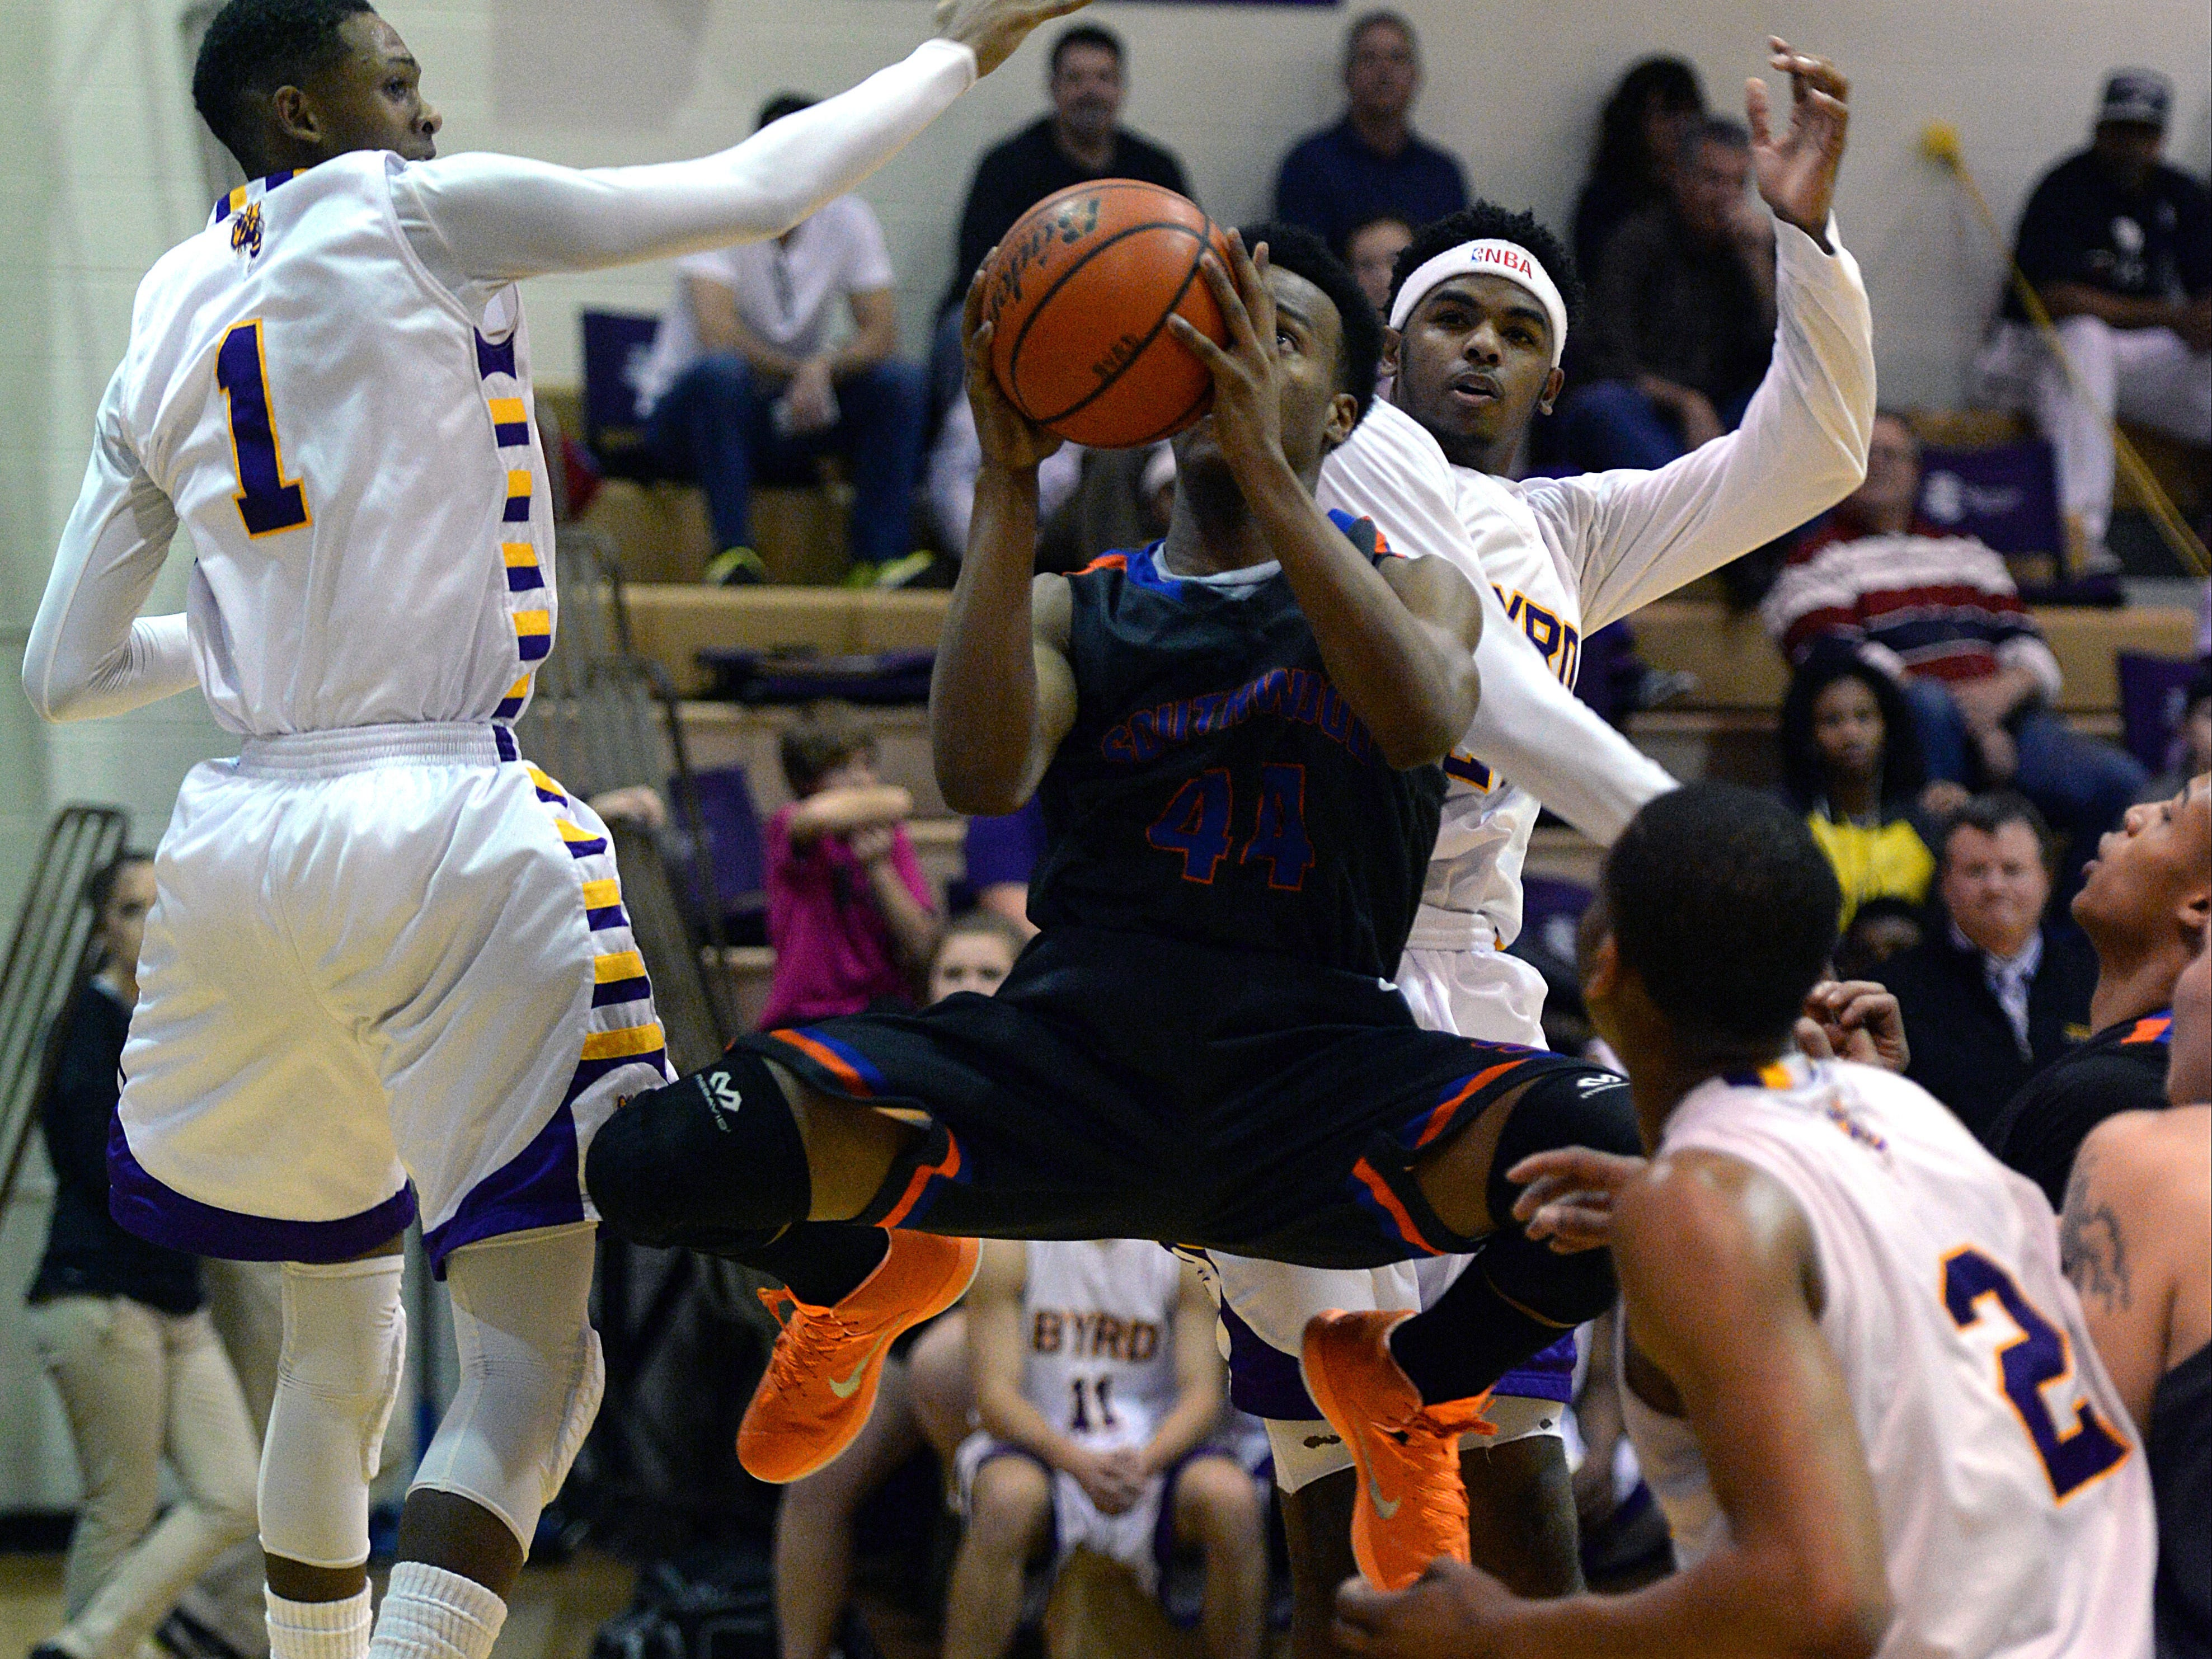 Southwood's Jaylon Payne shotes for two points between a pair of Byrd defenders.